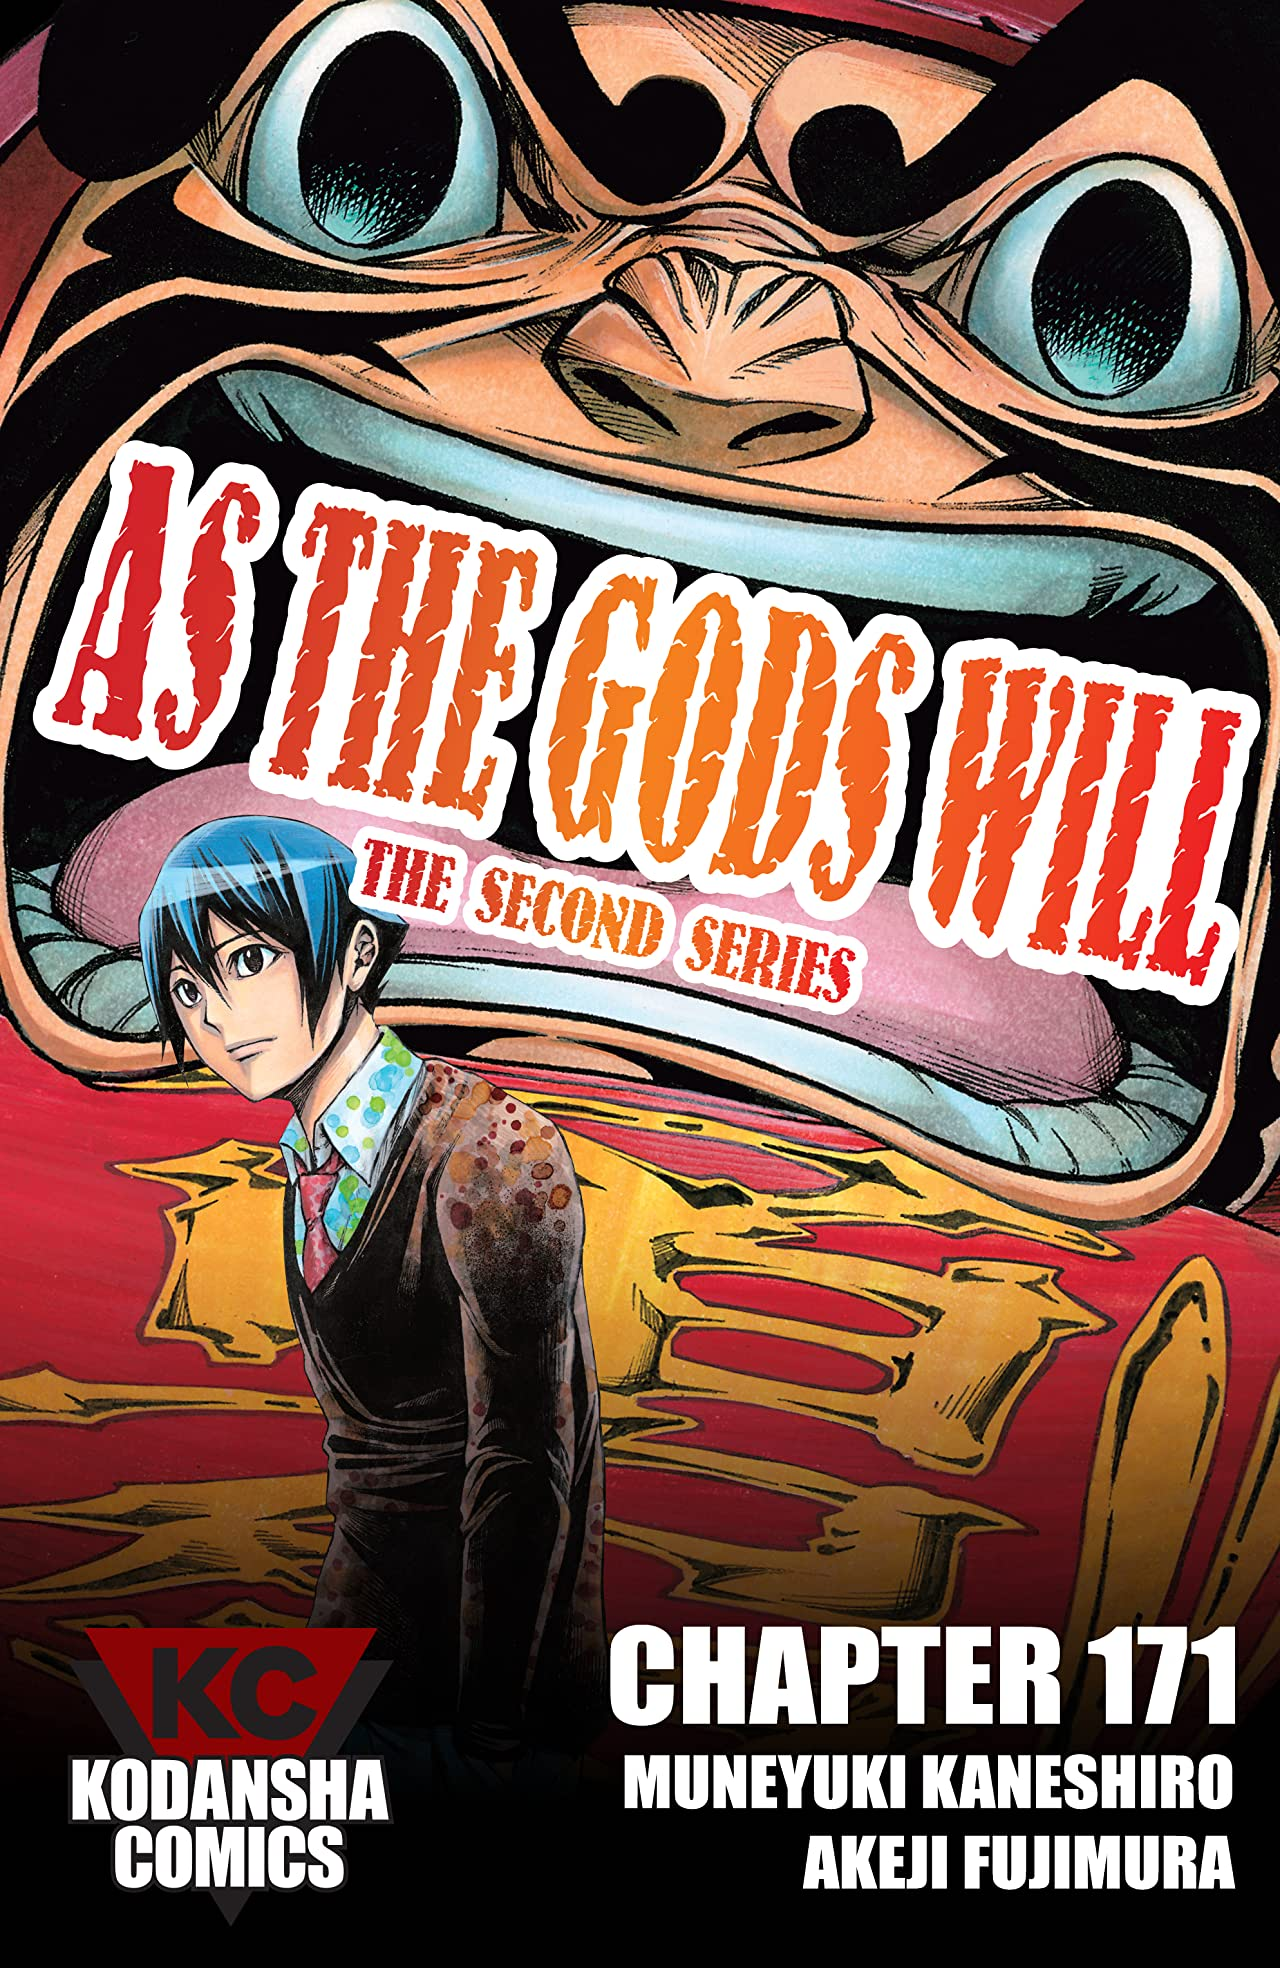 As The Gods Will: The Second Series #171